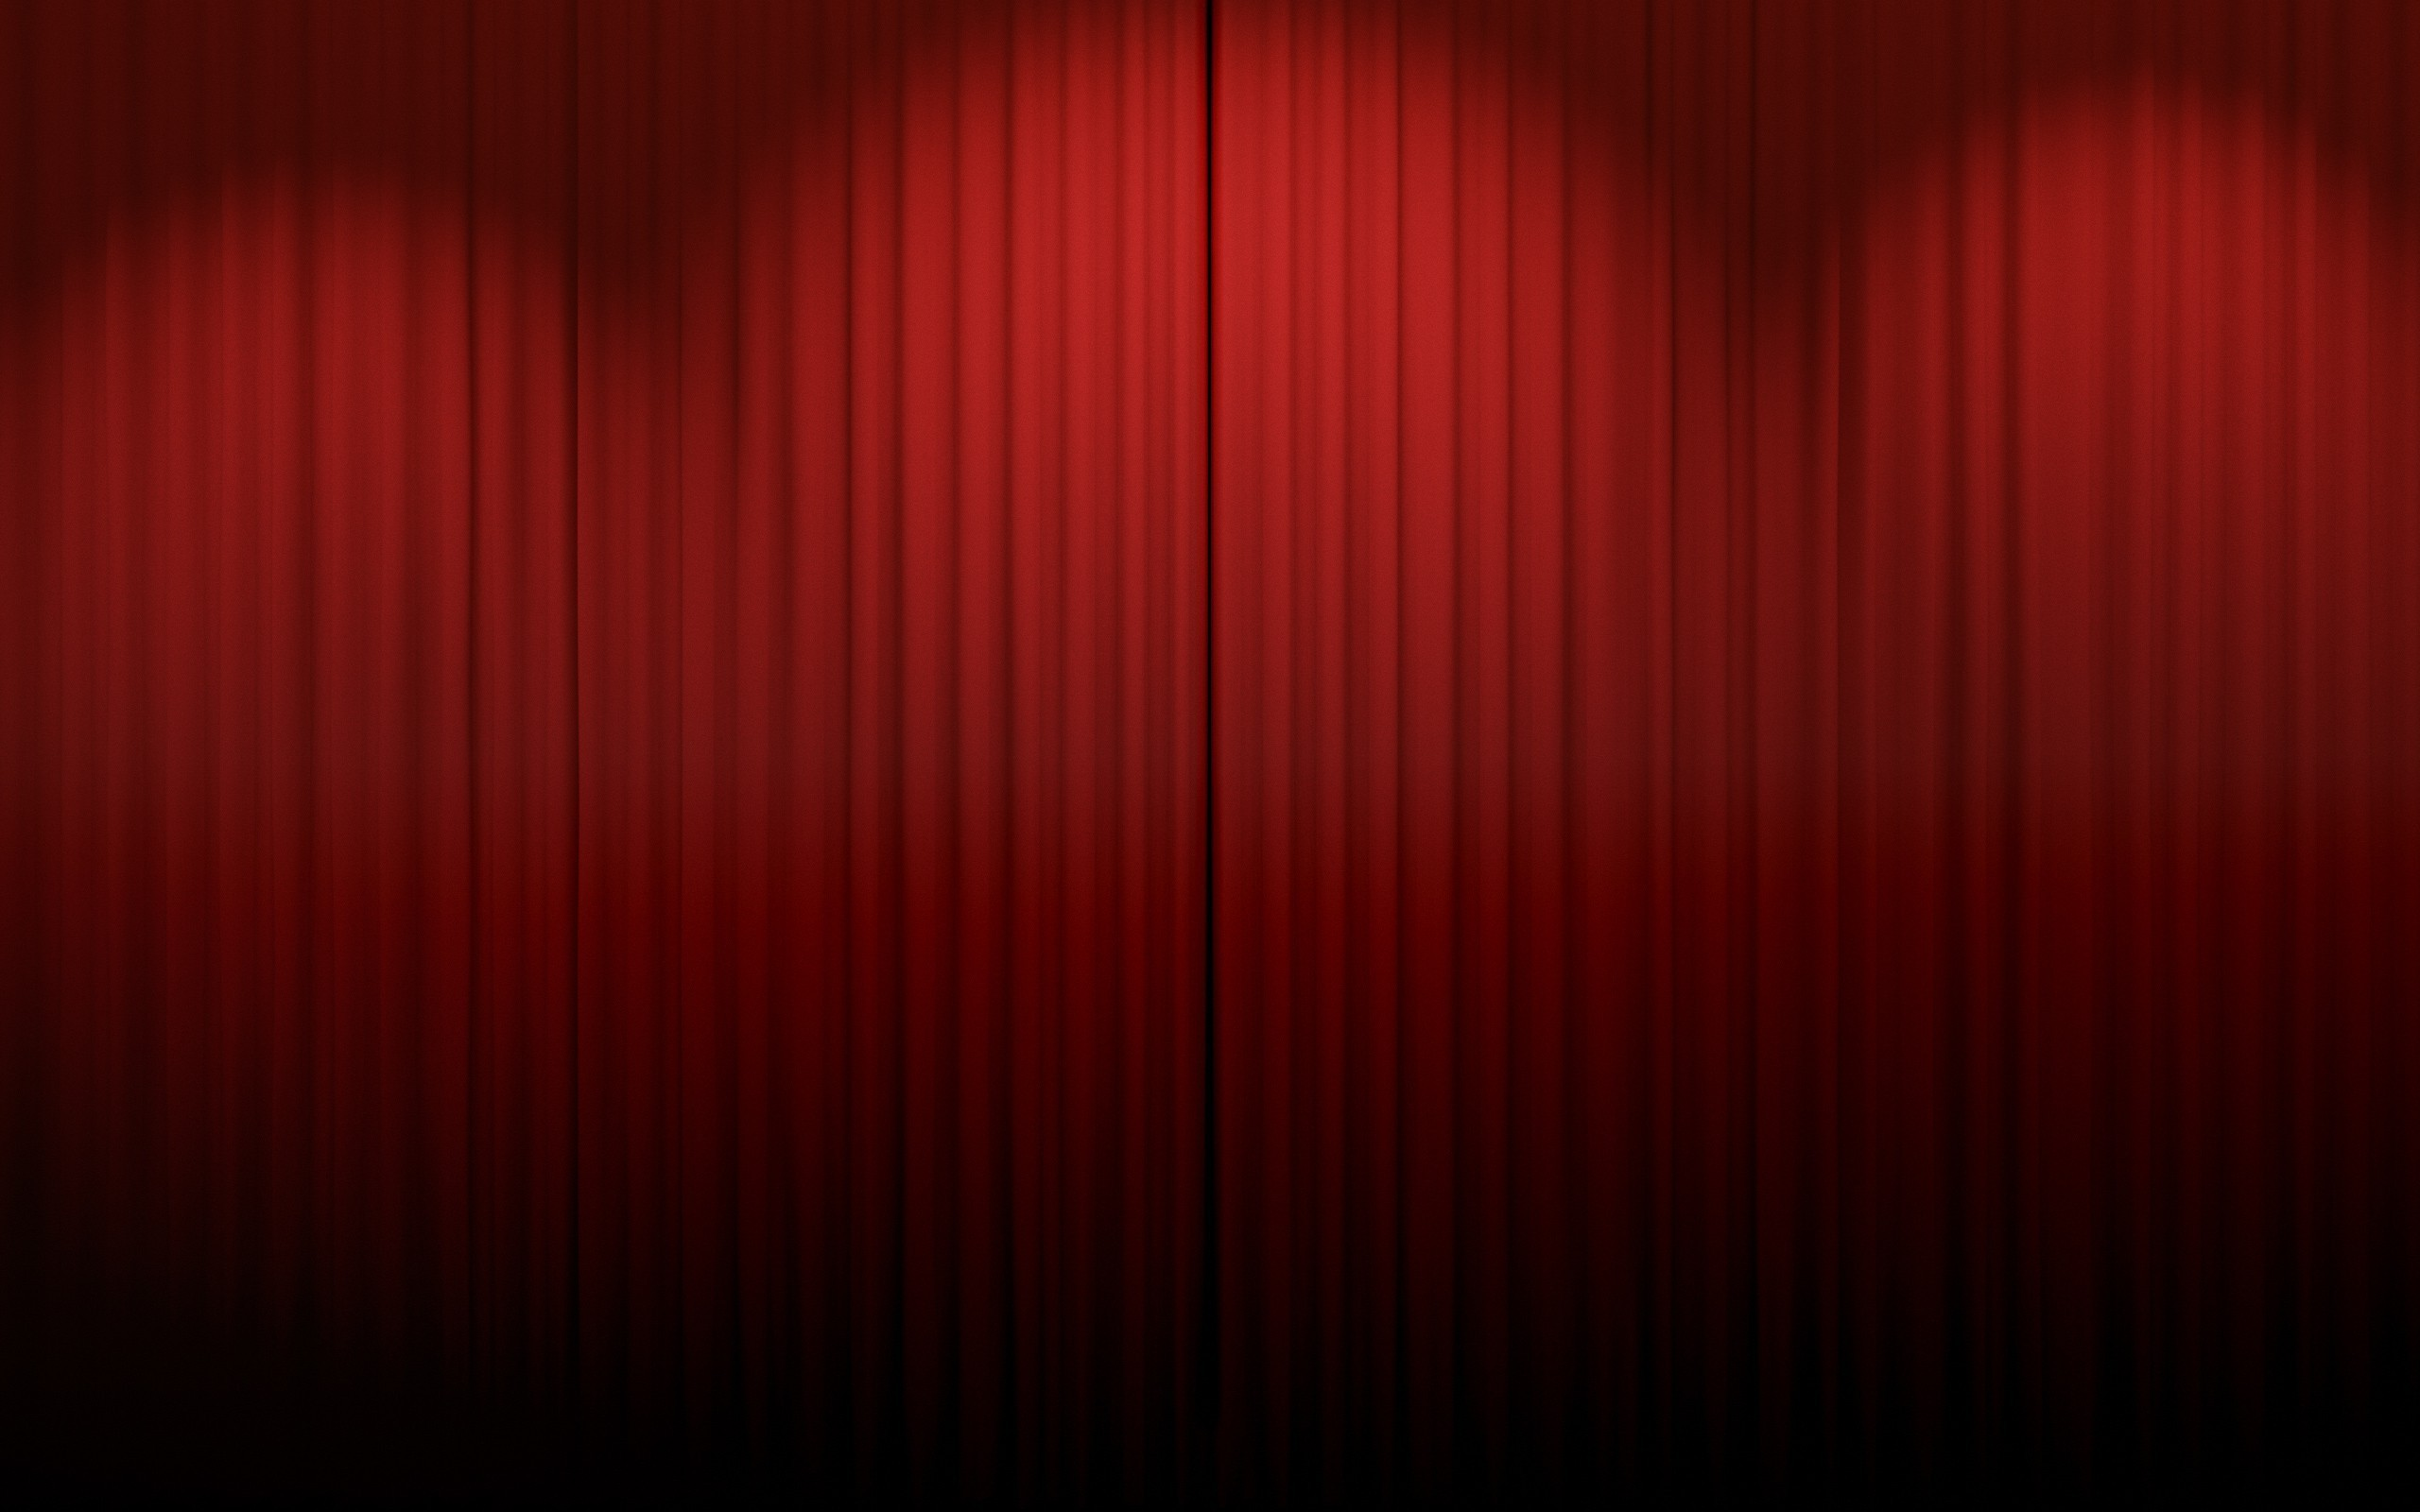 wallpapers red curtain background - photo #14